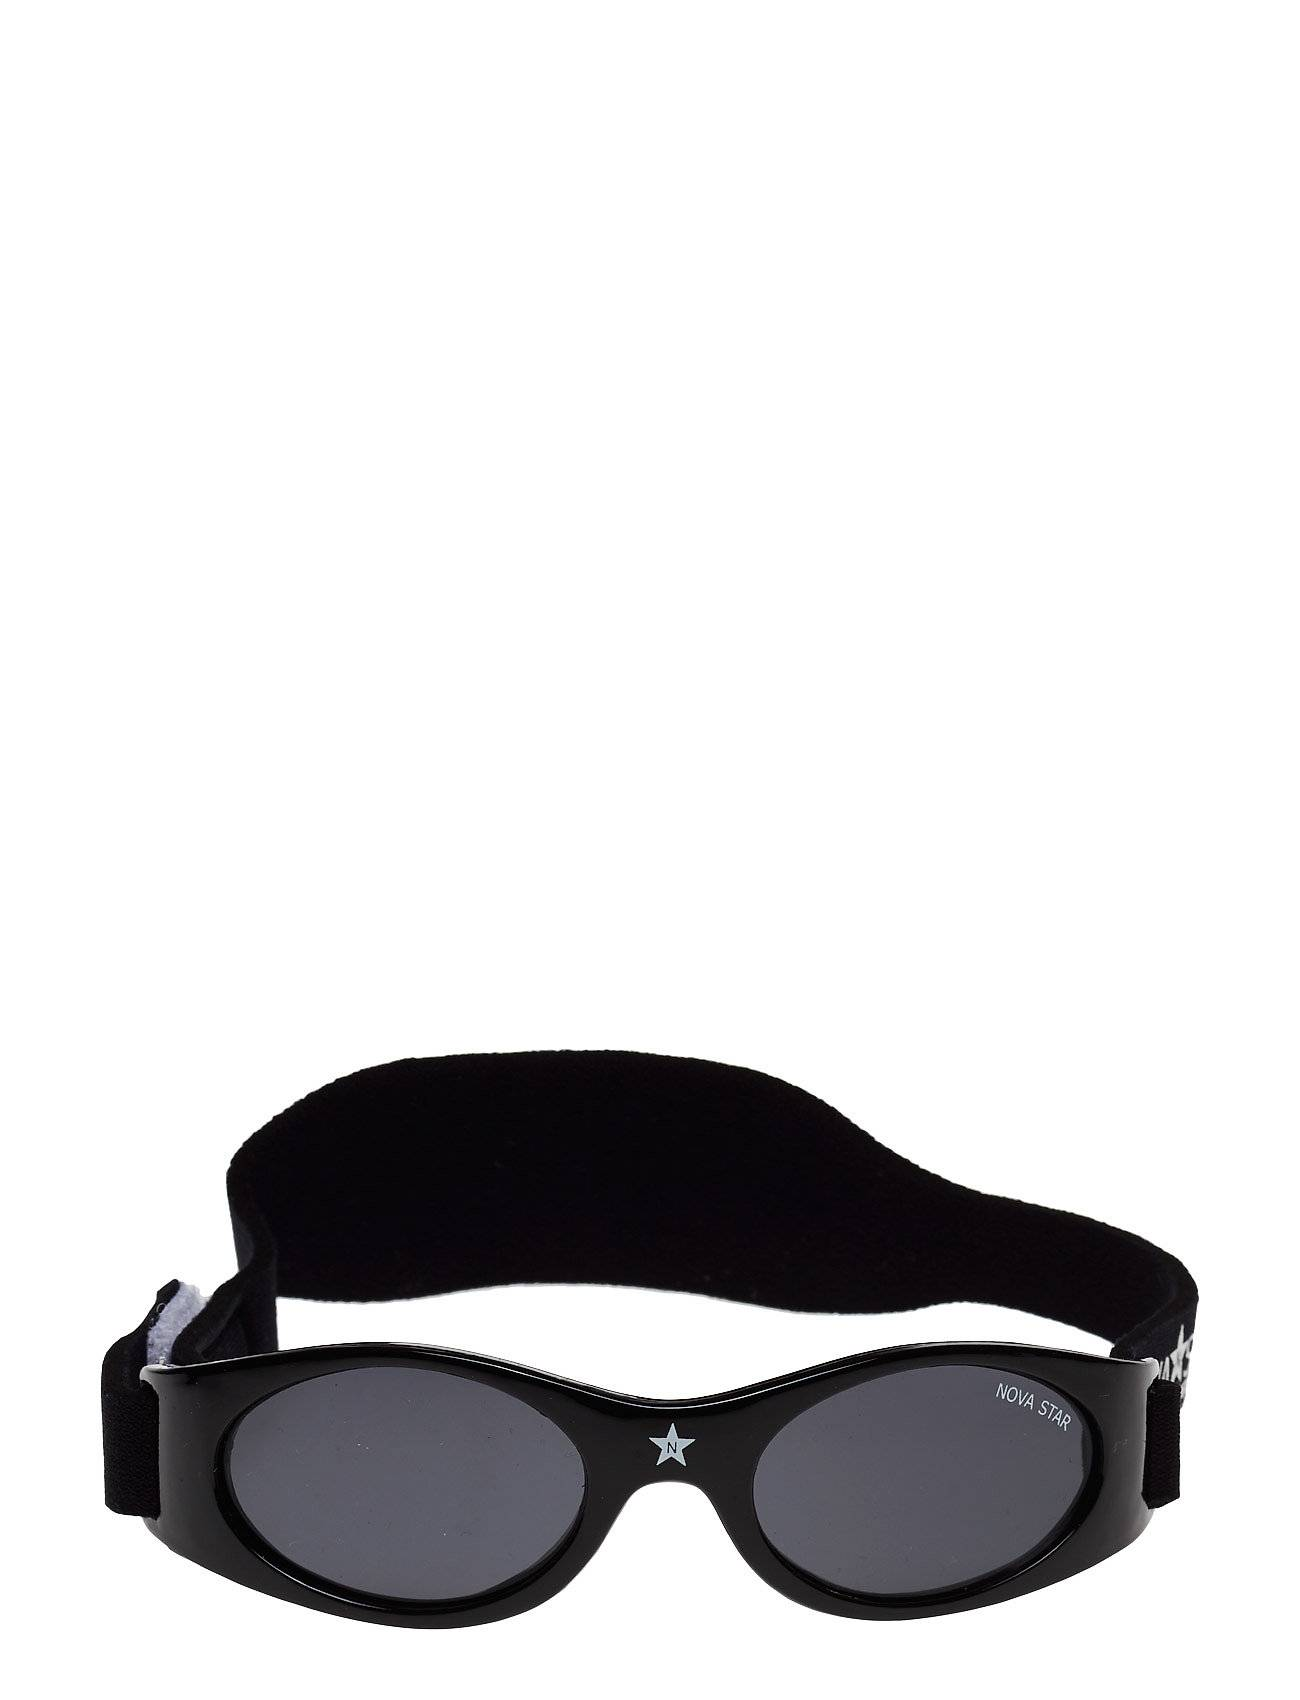 NOVA STAR Baby Sunglasses Black